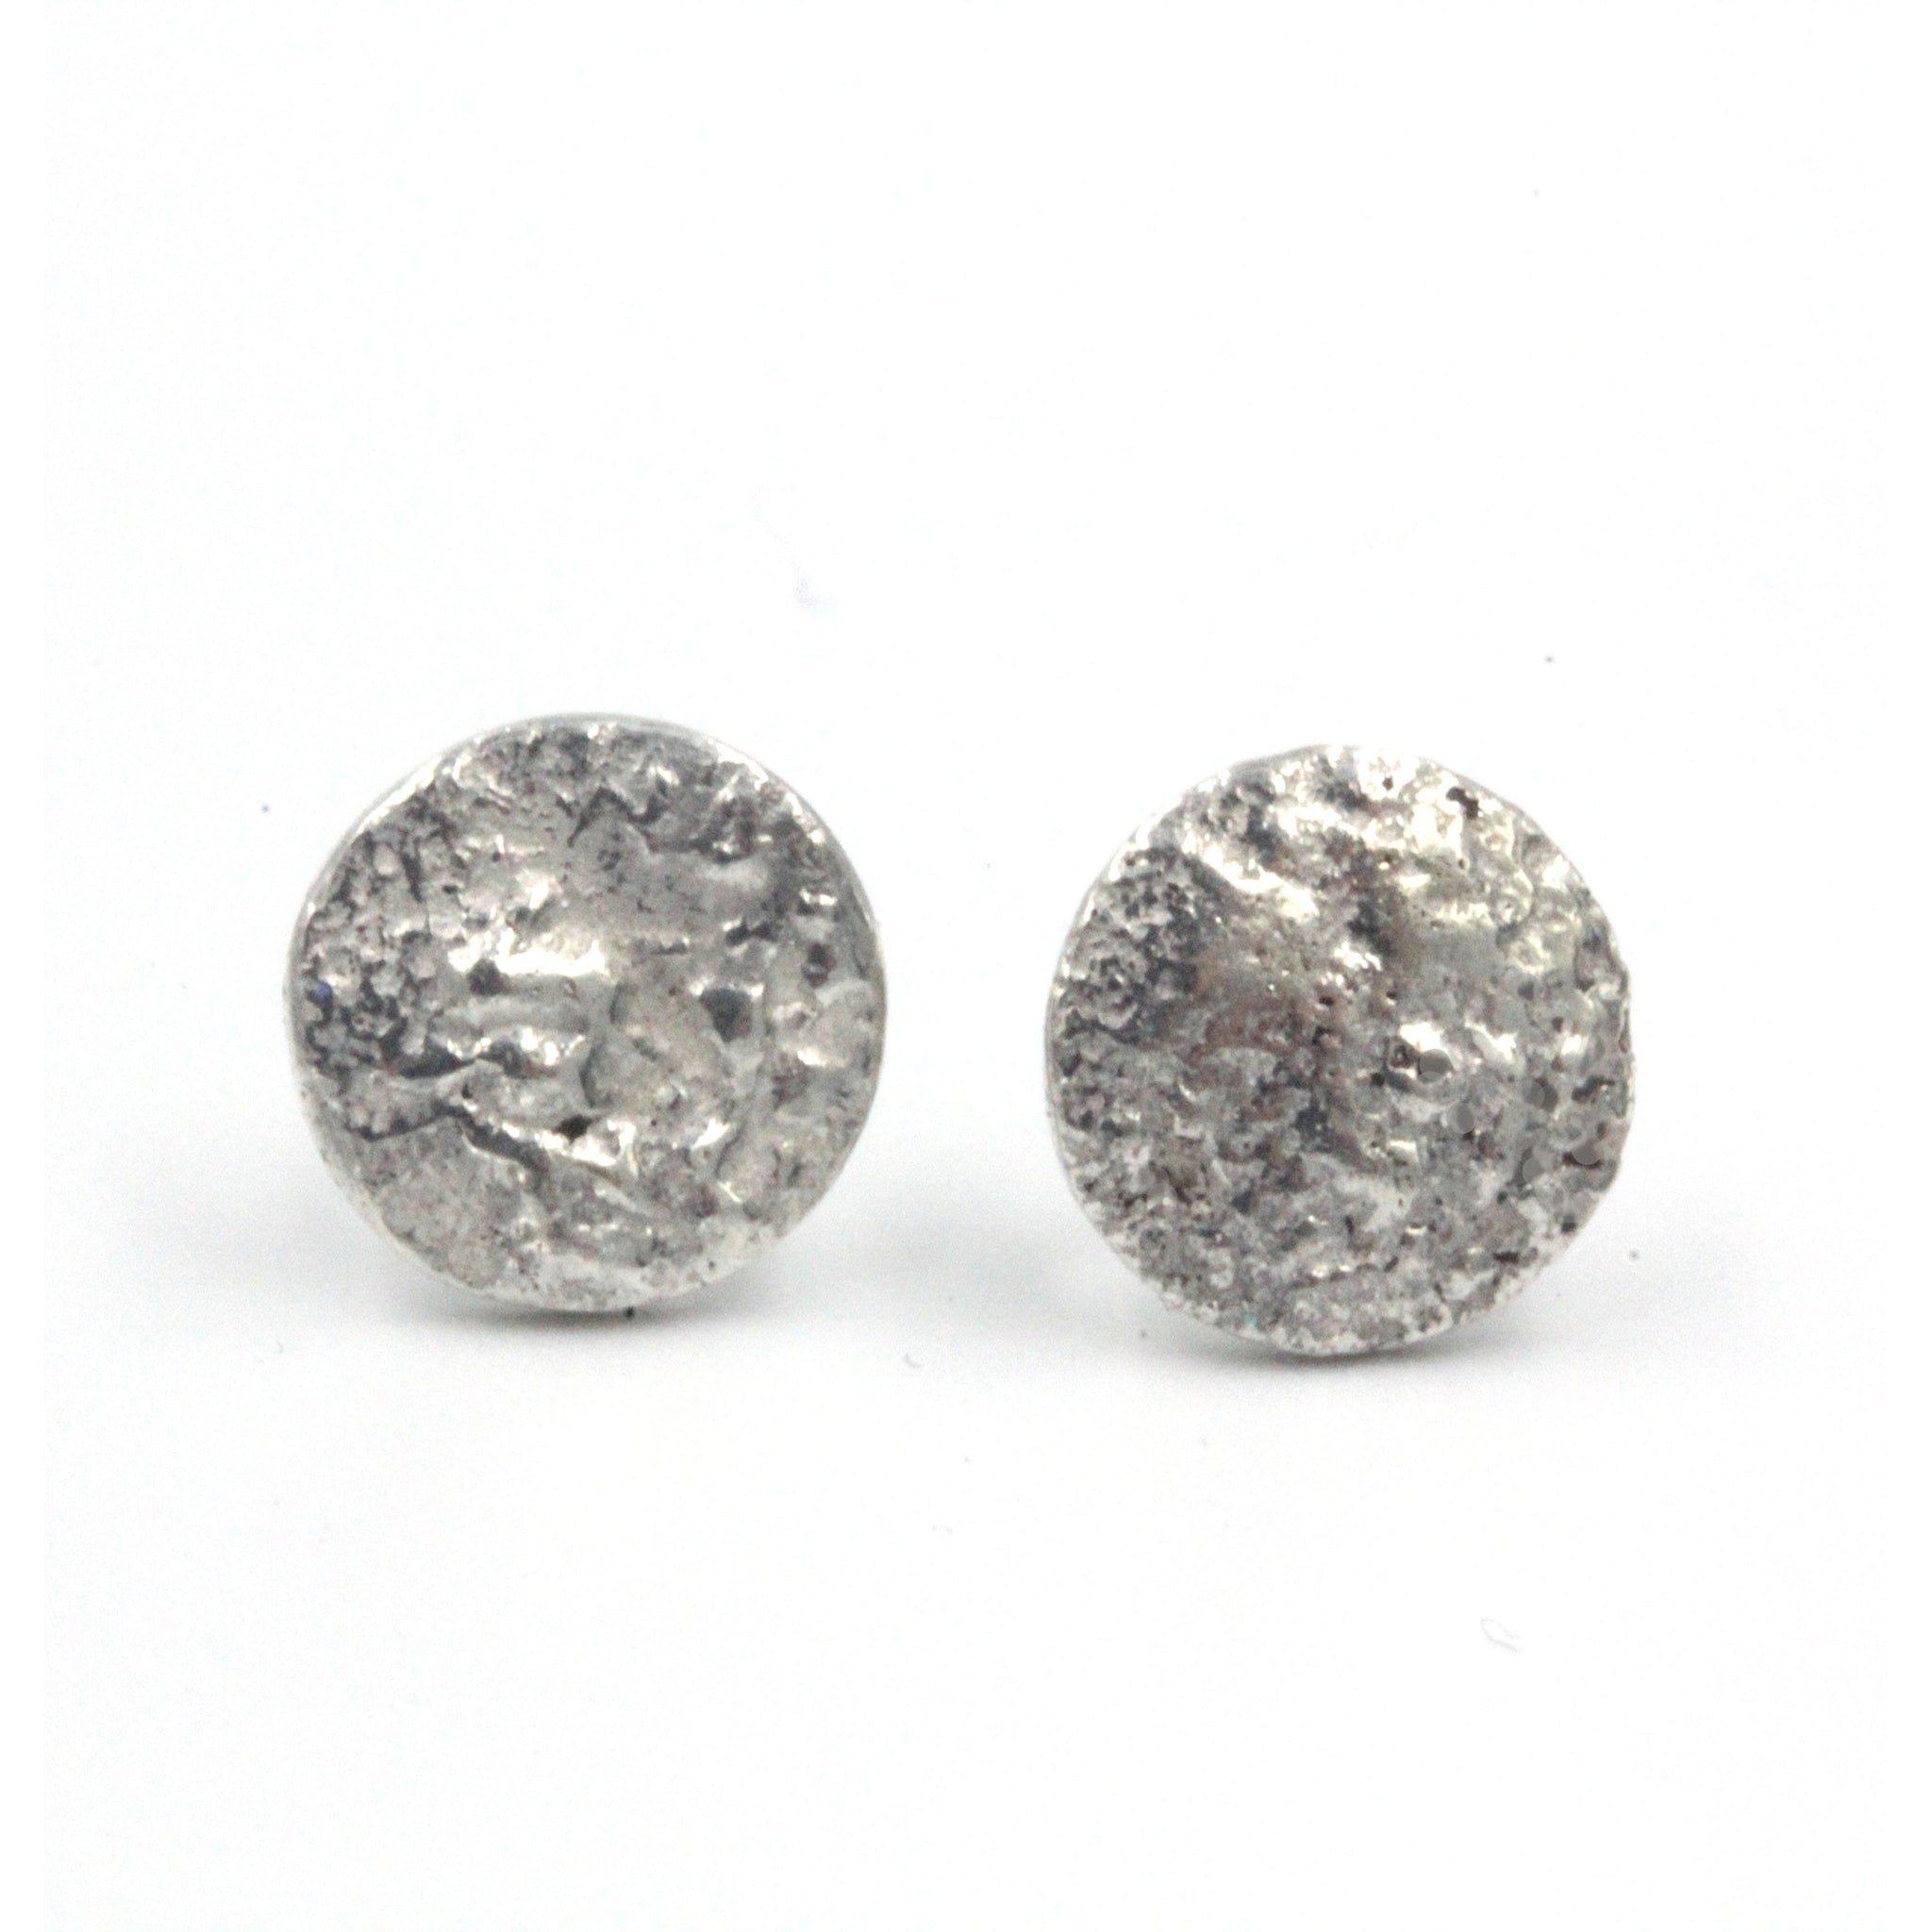 Unique 'Planets' textured stud earrings, handmade in sterling silver these stud earrings are inspired by the planets of our solar system and features a unique textures.